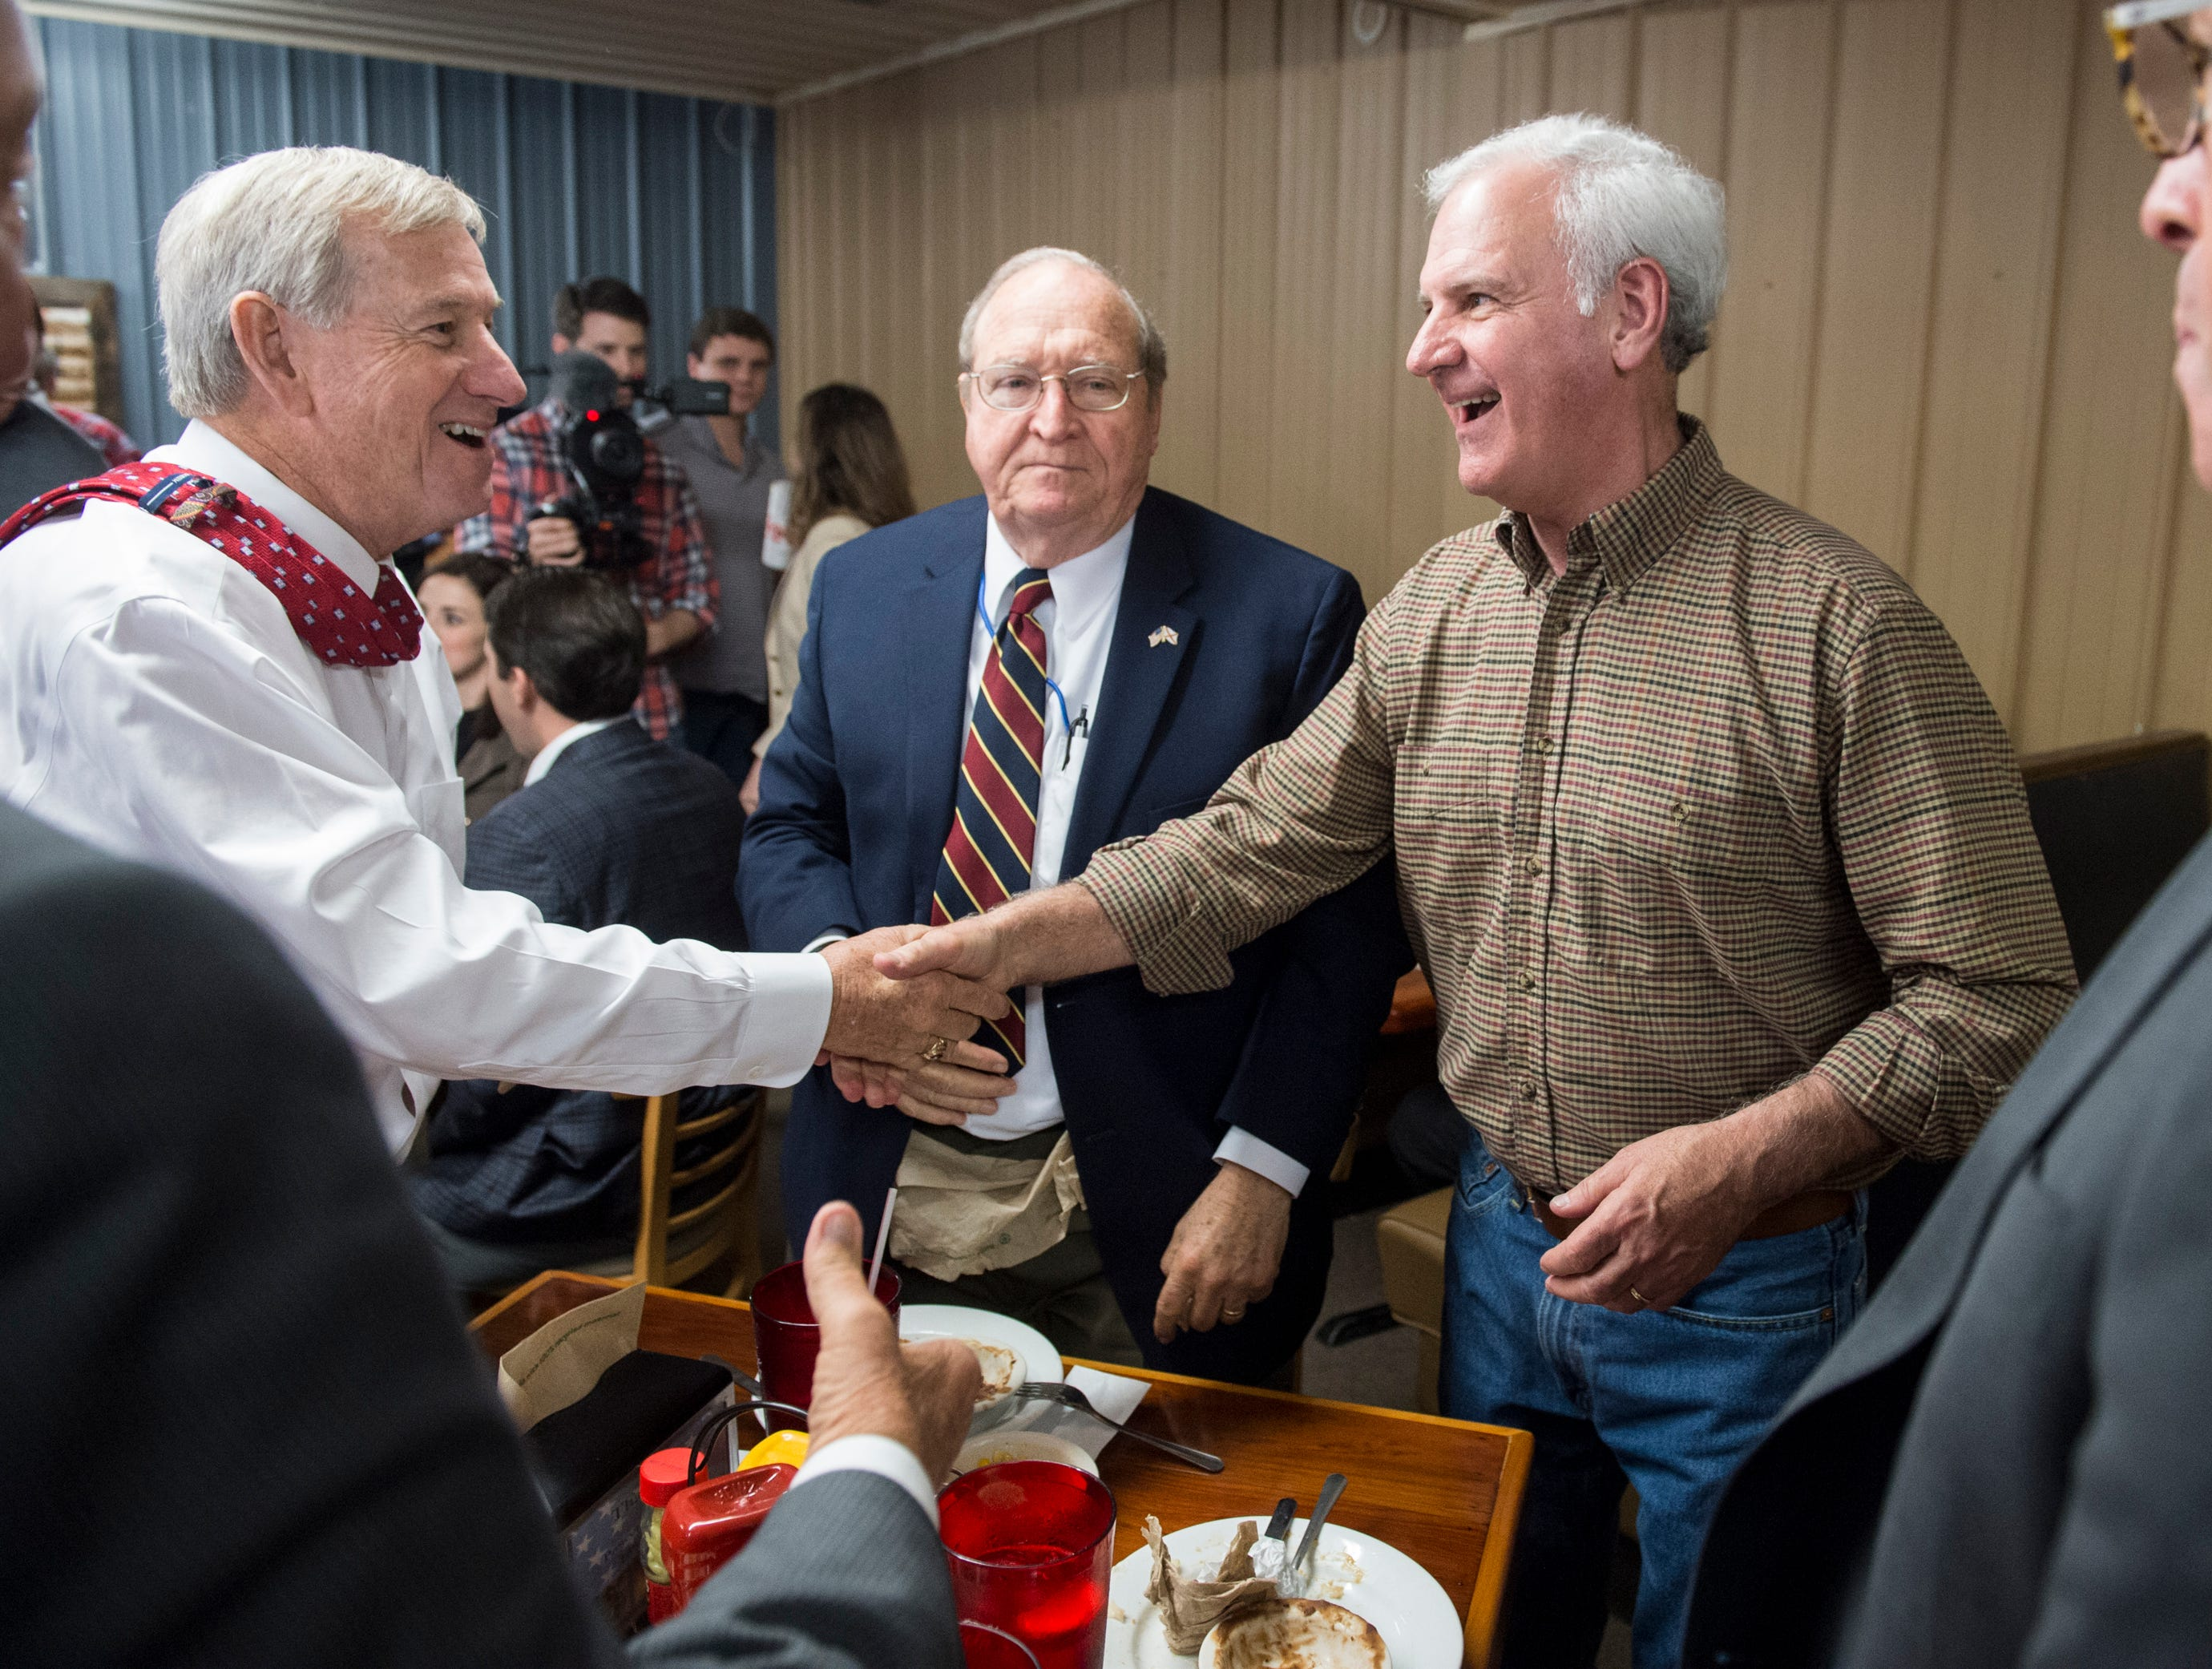 Montgomery Mayor Todd Strange shakes hands with U.S. Rep. Bradley Byrne at Yellowhammer Cafe in Montgomery, Ala., on Thursday, Feb. 21, 2019.